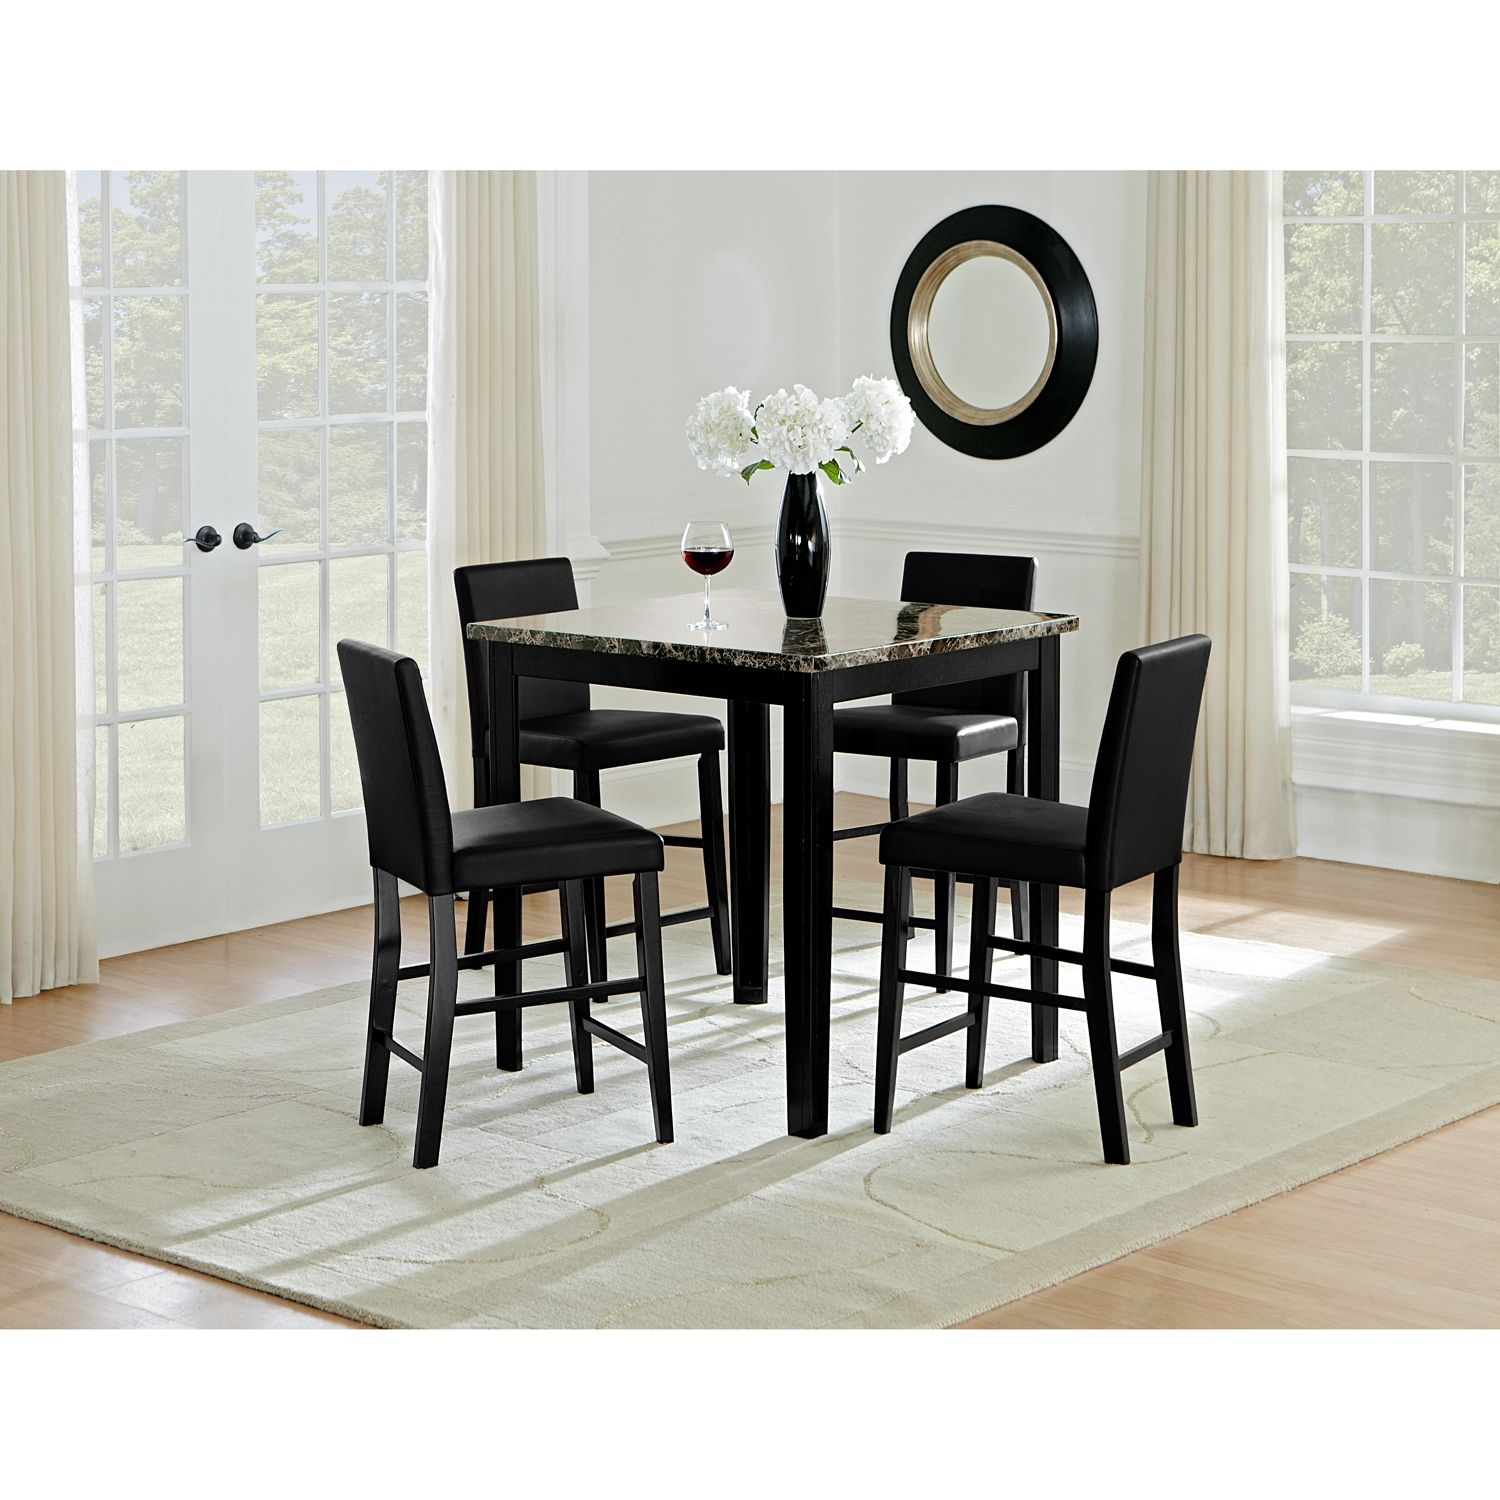 dining room furniture americana espresso 5 pc dinette americana pinterest espresso city furniture and room